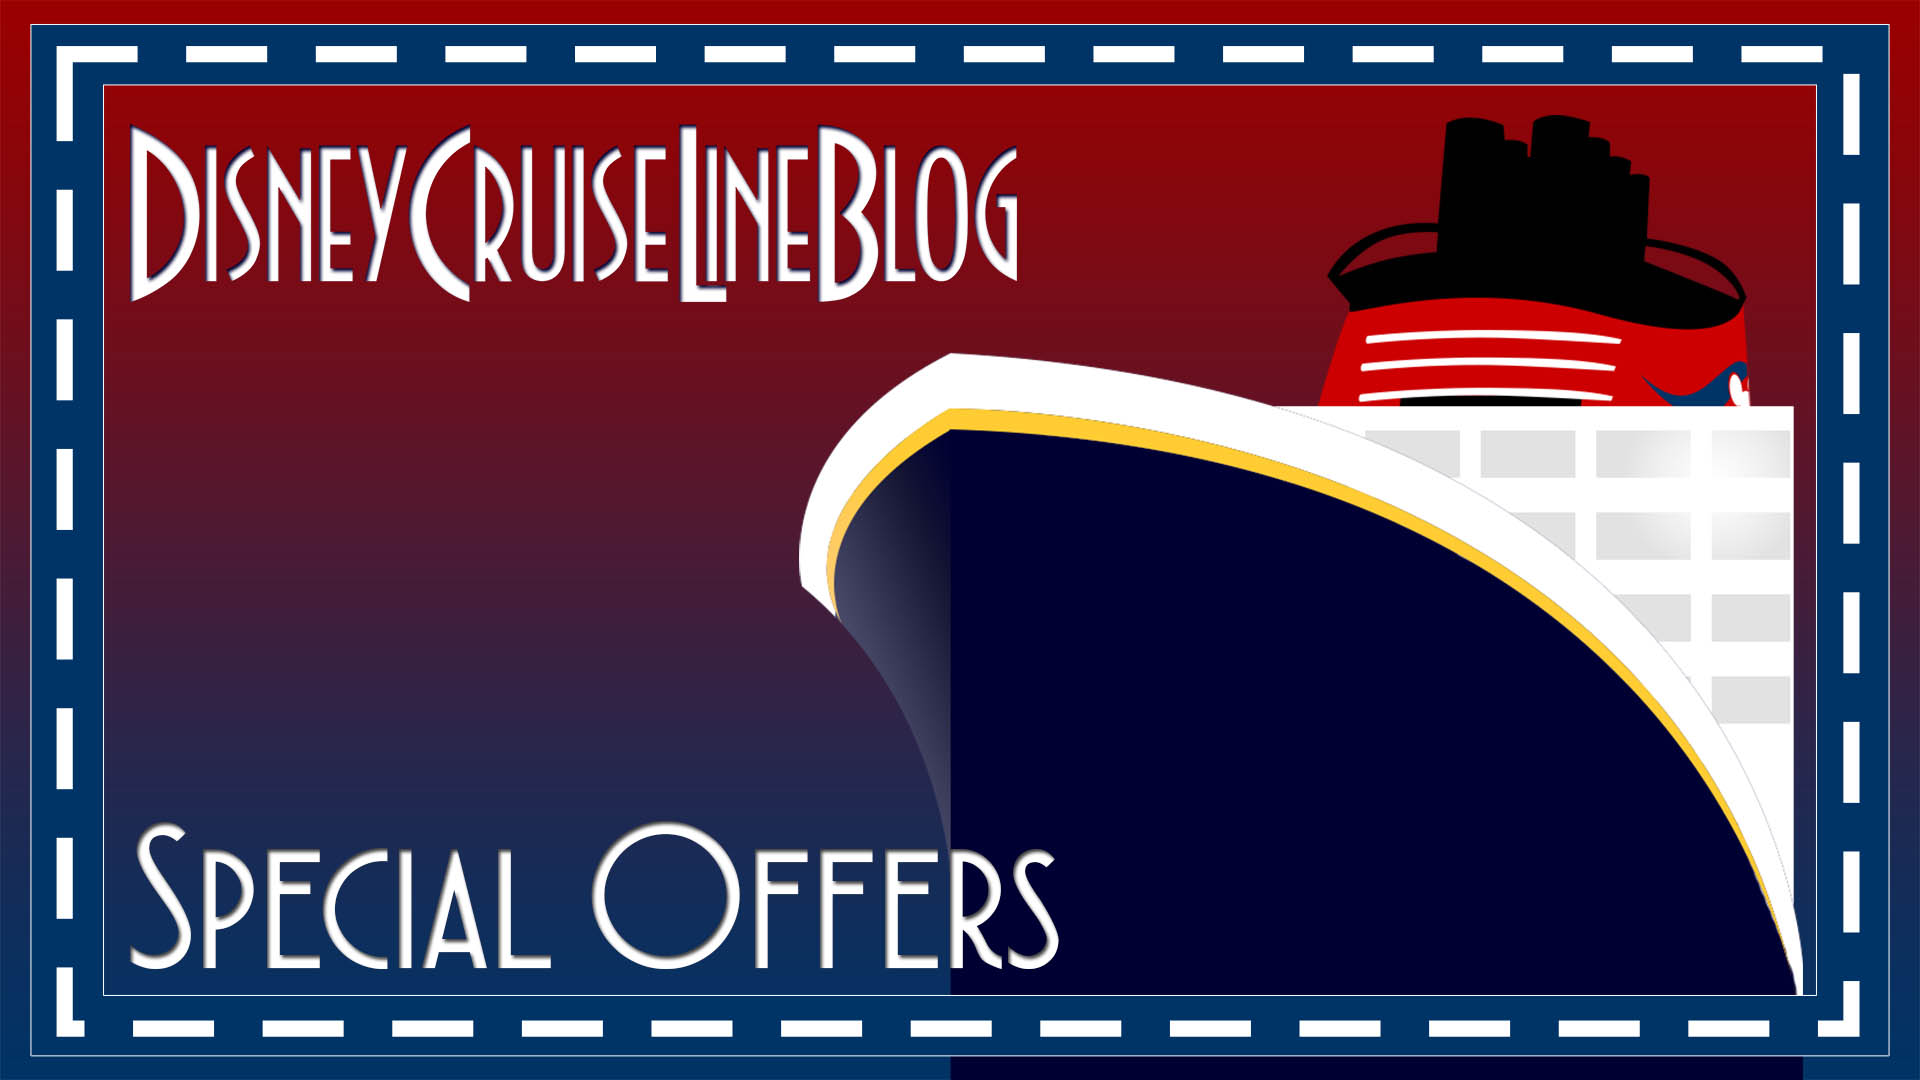 Special Offers On Disney Cruise Line Sailings As Of 8 20 2018